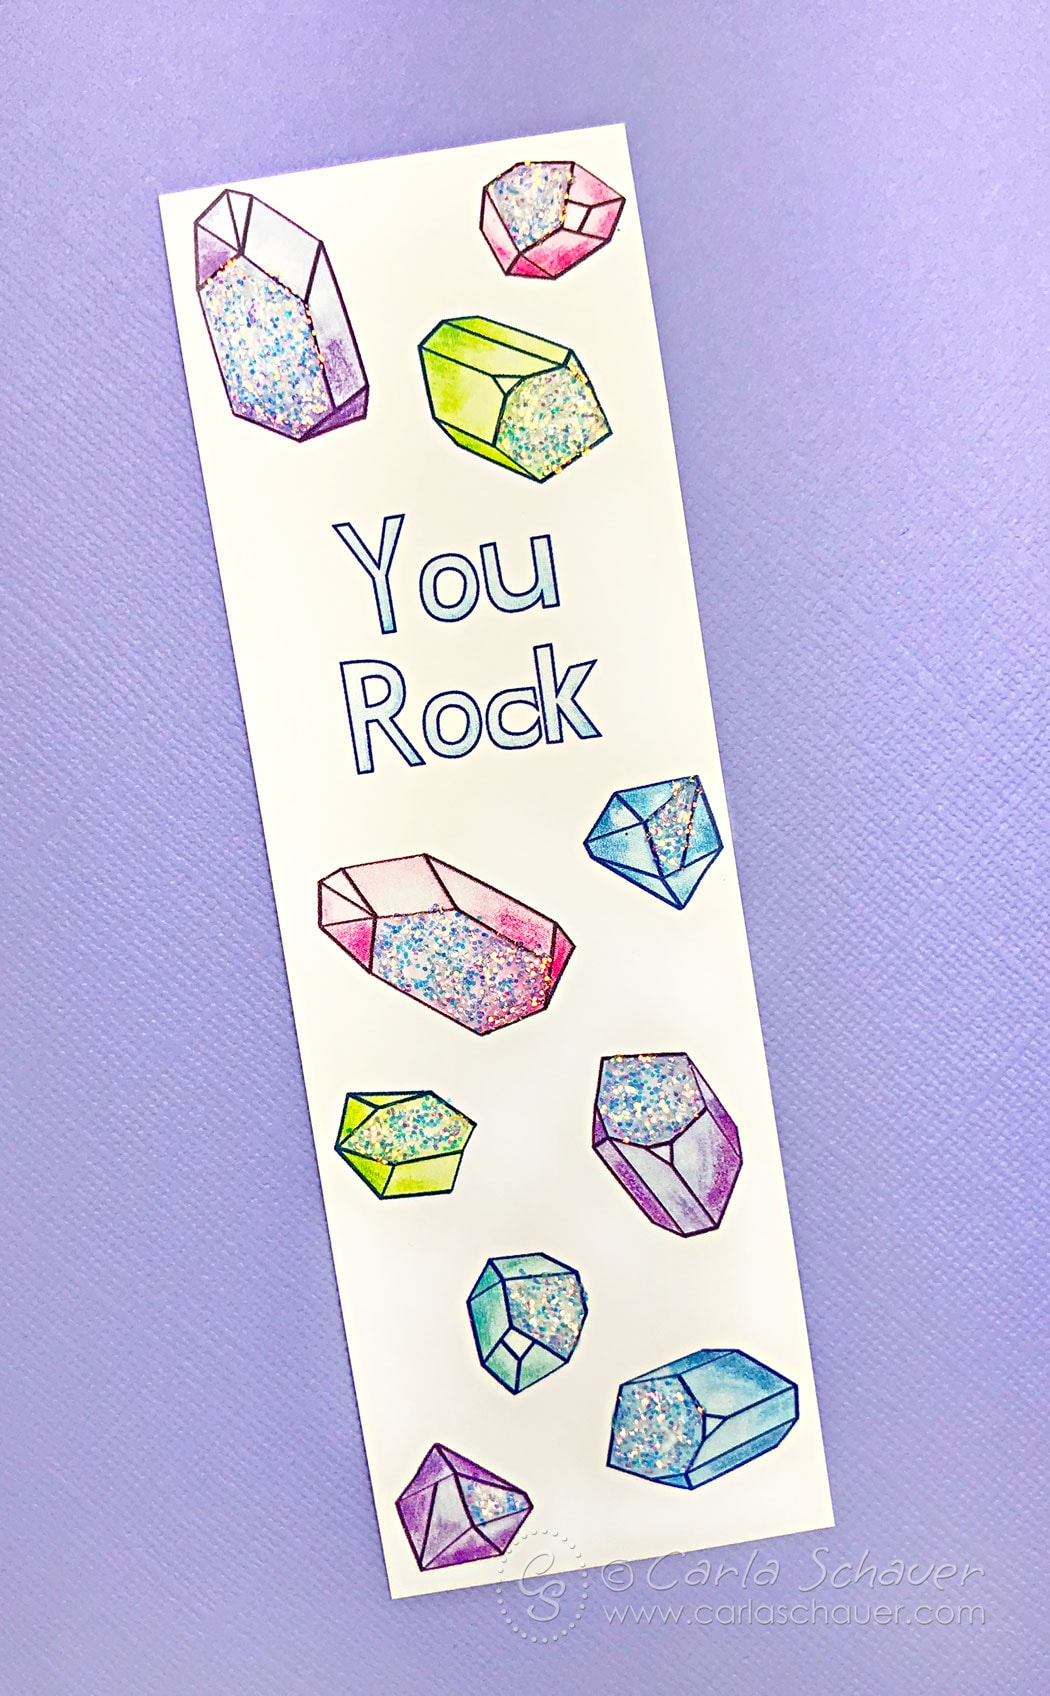 Glittered crystal patterned bookmark on purple background